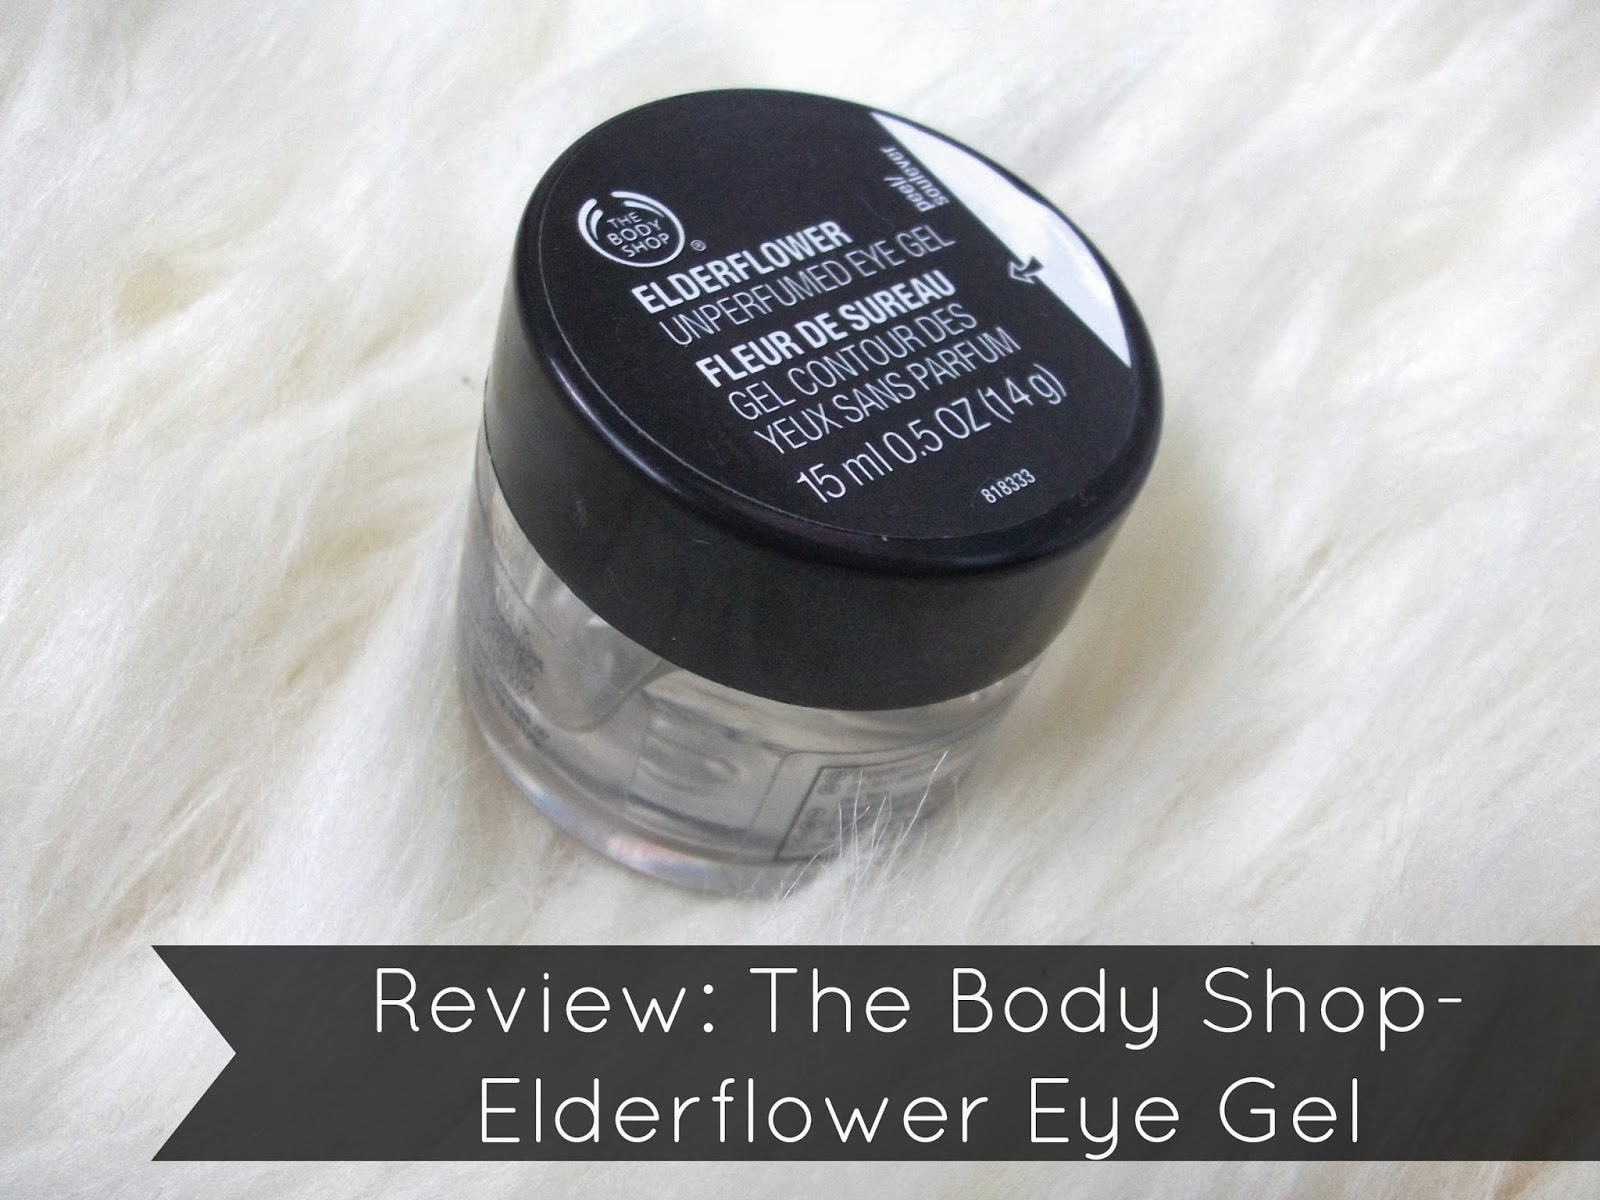 Review: The Body Shop- Elderflower Eye Gel